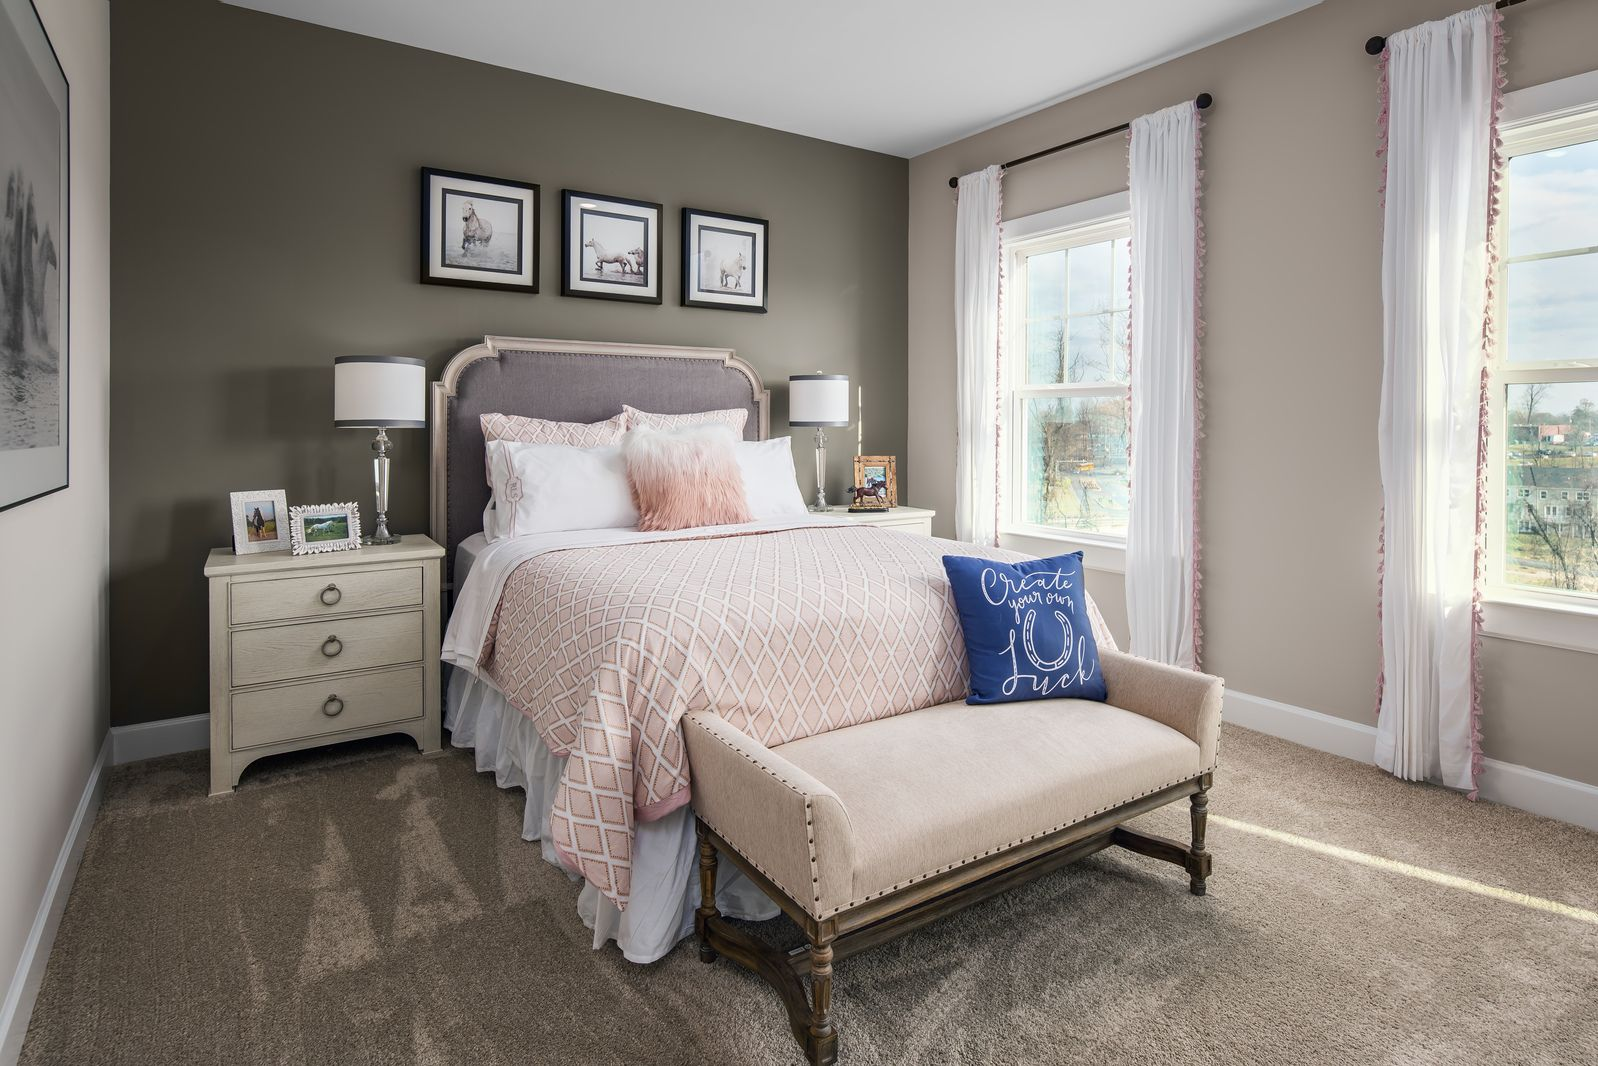 Bedroom featured in the Haverford Duplex By HeartlandHomes in Pittsburgh, PA